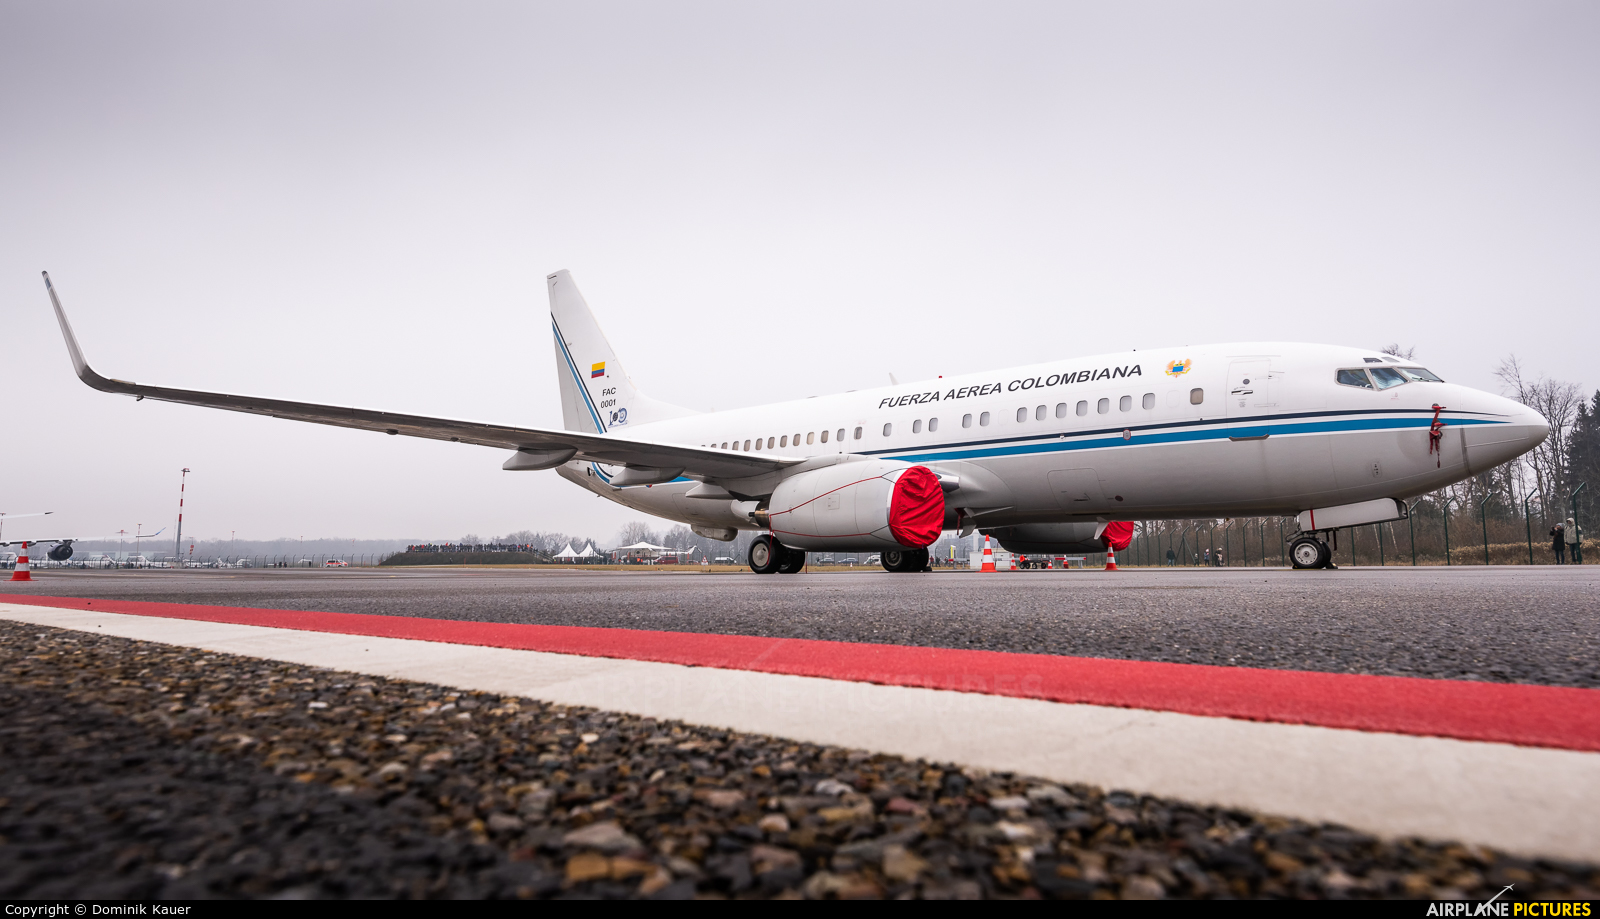 Colombia - Air Force FAC0001 aircraft at Zurich